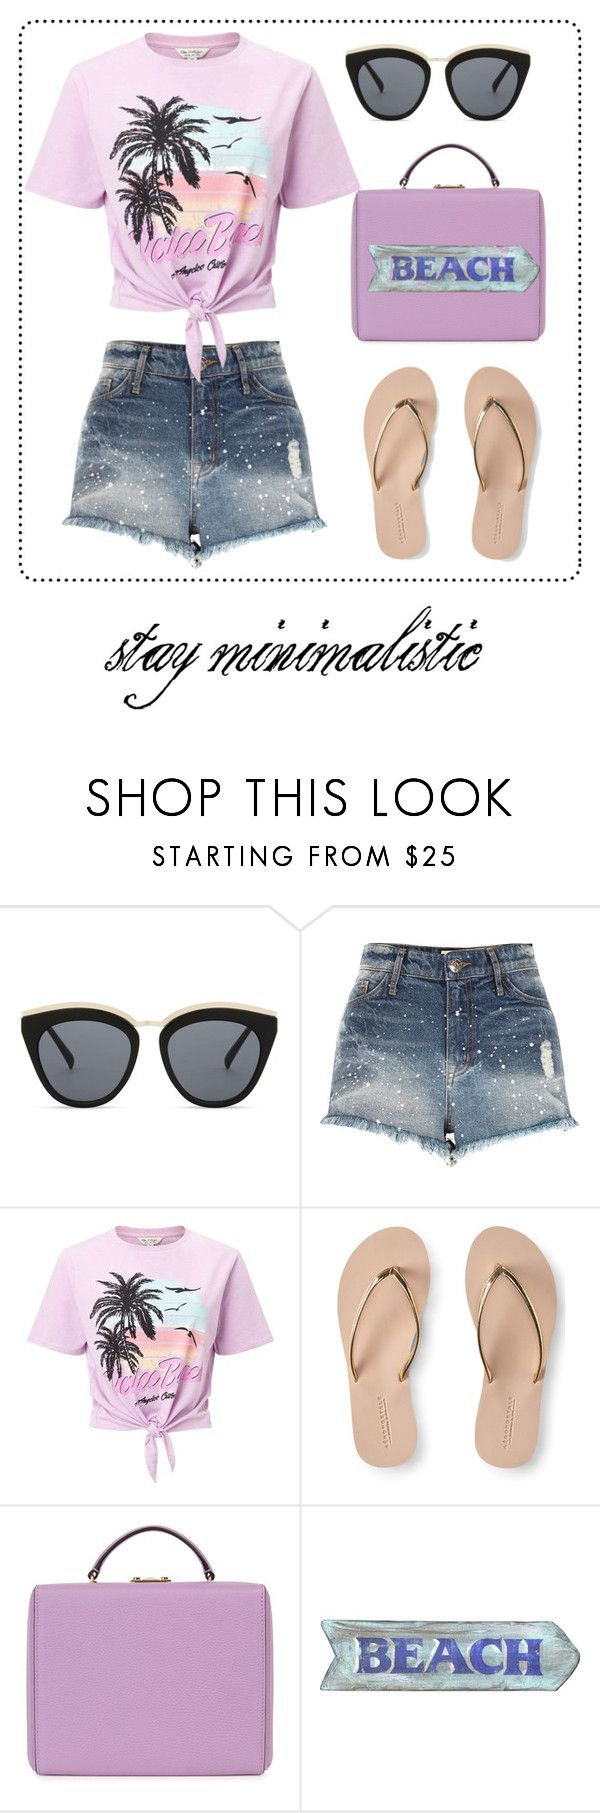 """""""stay minimalistic #001"""" by cissyloveshogwarts on Polyvore featuring Mode, Le Specs, River Island, Miss Selfridge, Aéropostale und Mark Cross"""